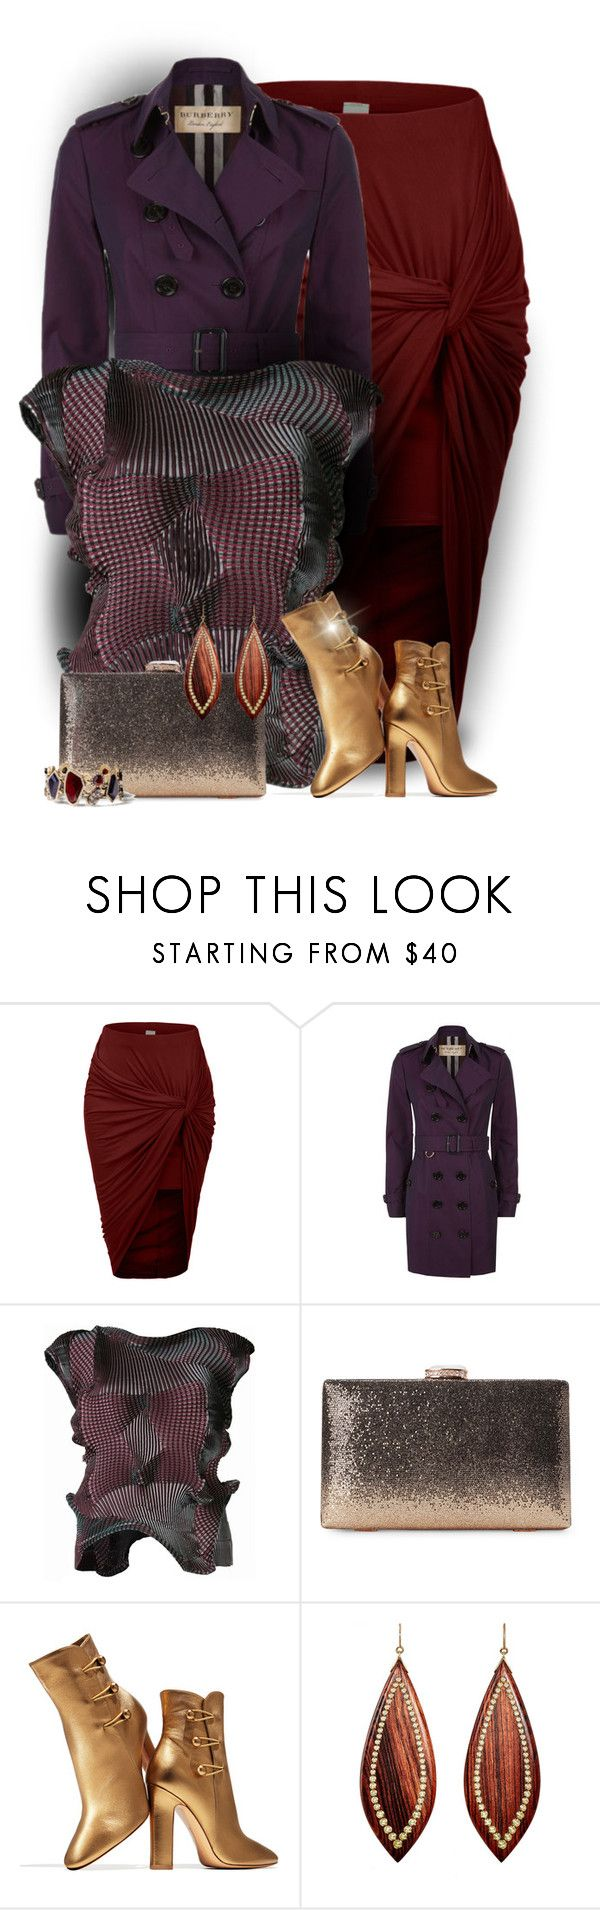 """""""It's A Wrap"""" by majezy ❤ liked on Polyvore featuring LE3NO, Burberry, Gianvito Rossi, Mark Davis and Chloe + Isabel"""